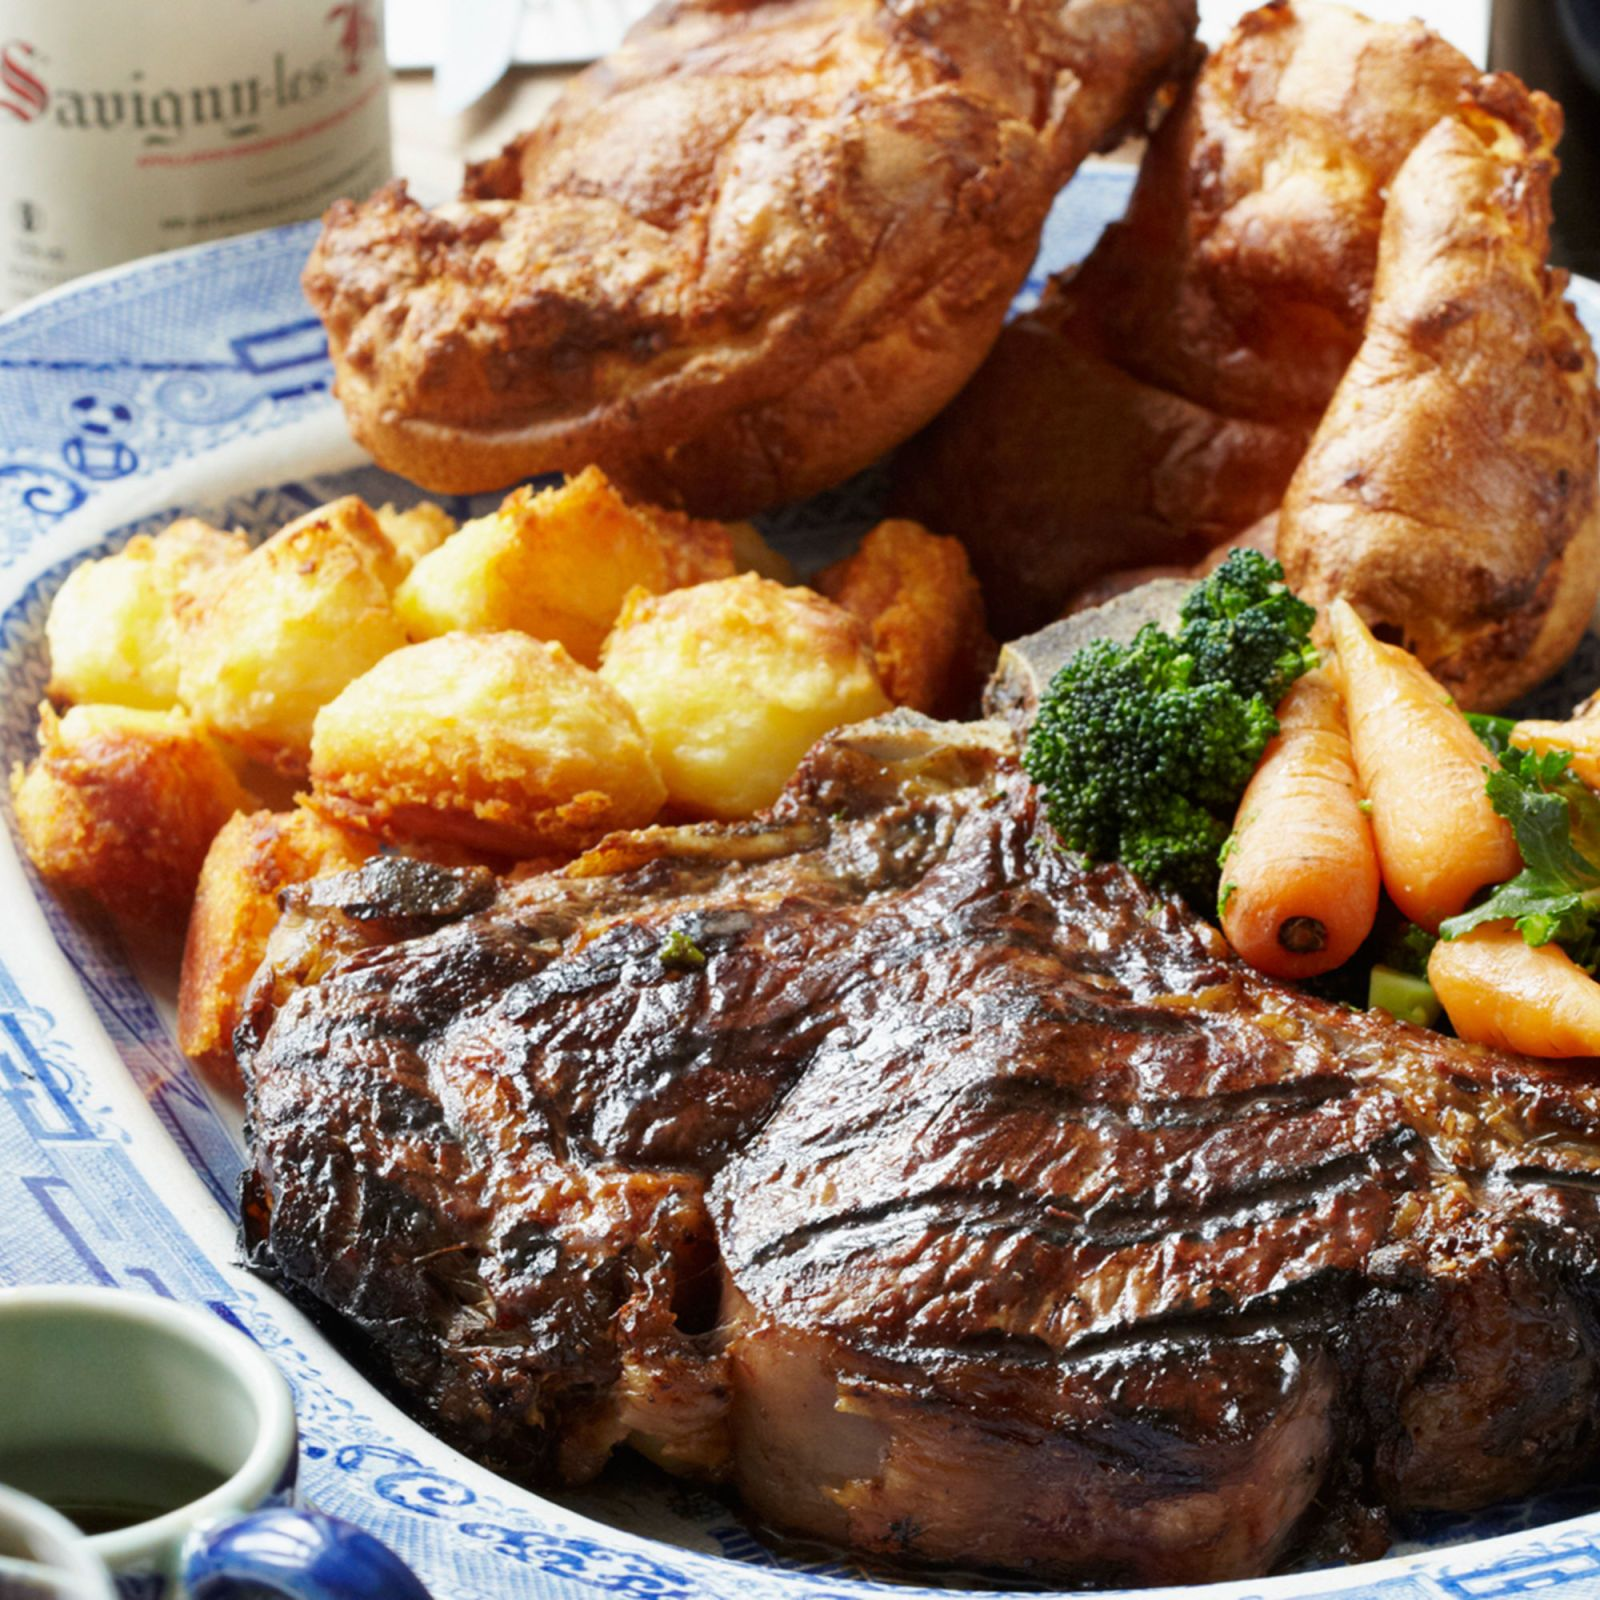 14 of the best Sunday roasts in London for when it's cold outside and gravy is the answer